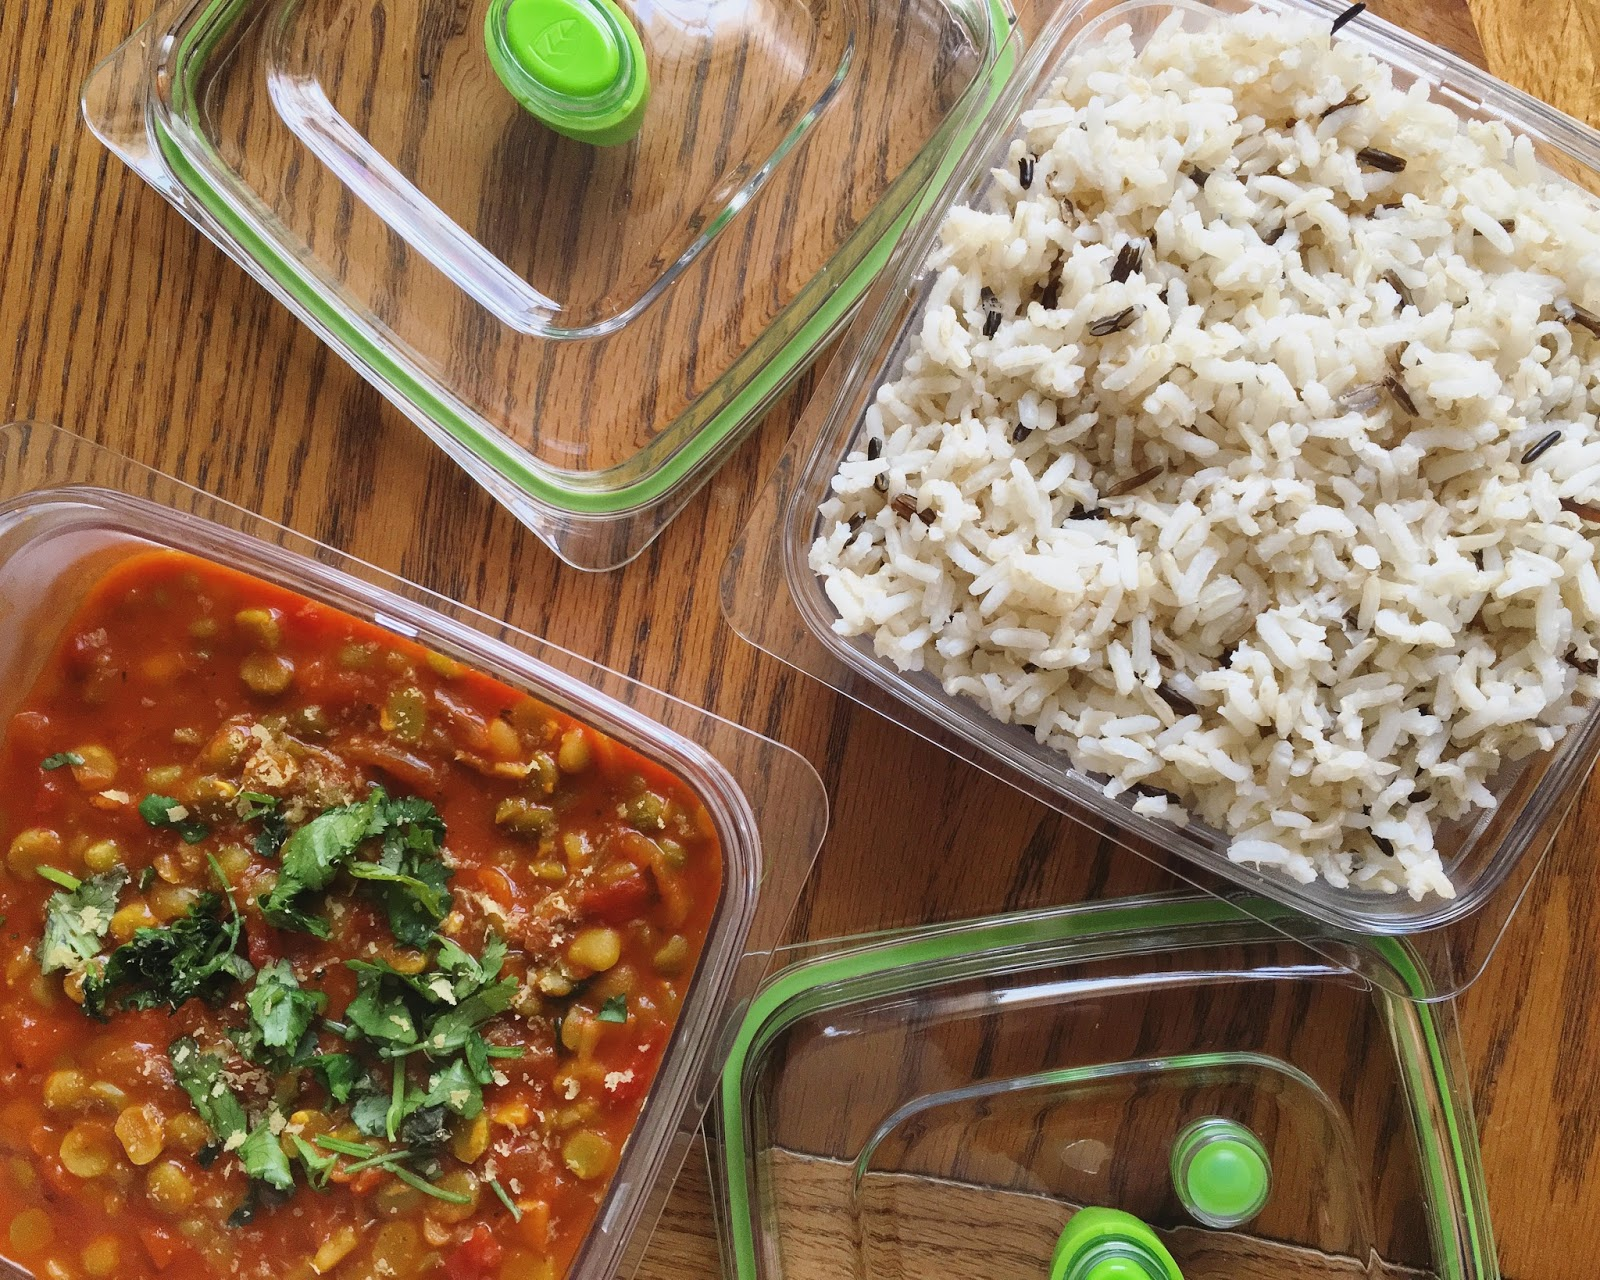 An insight into food waste with FoodSaver